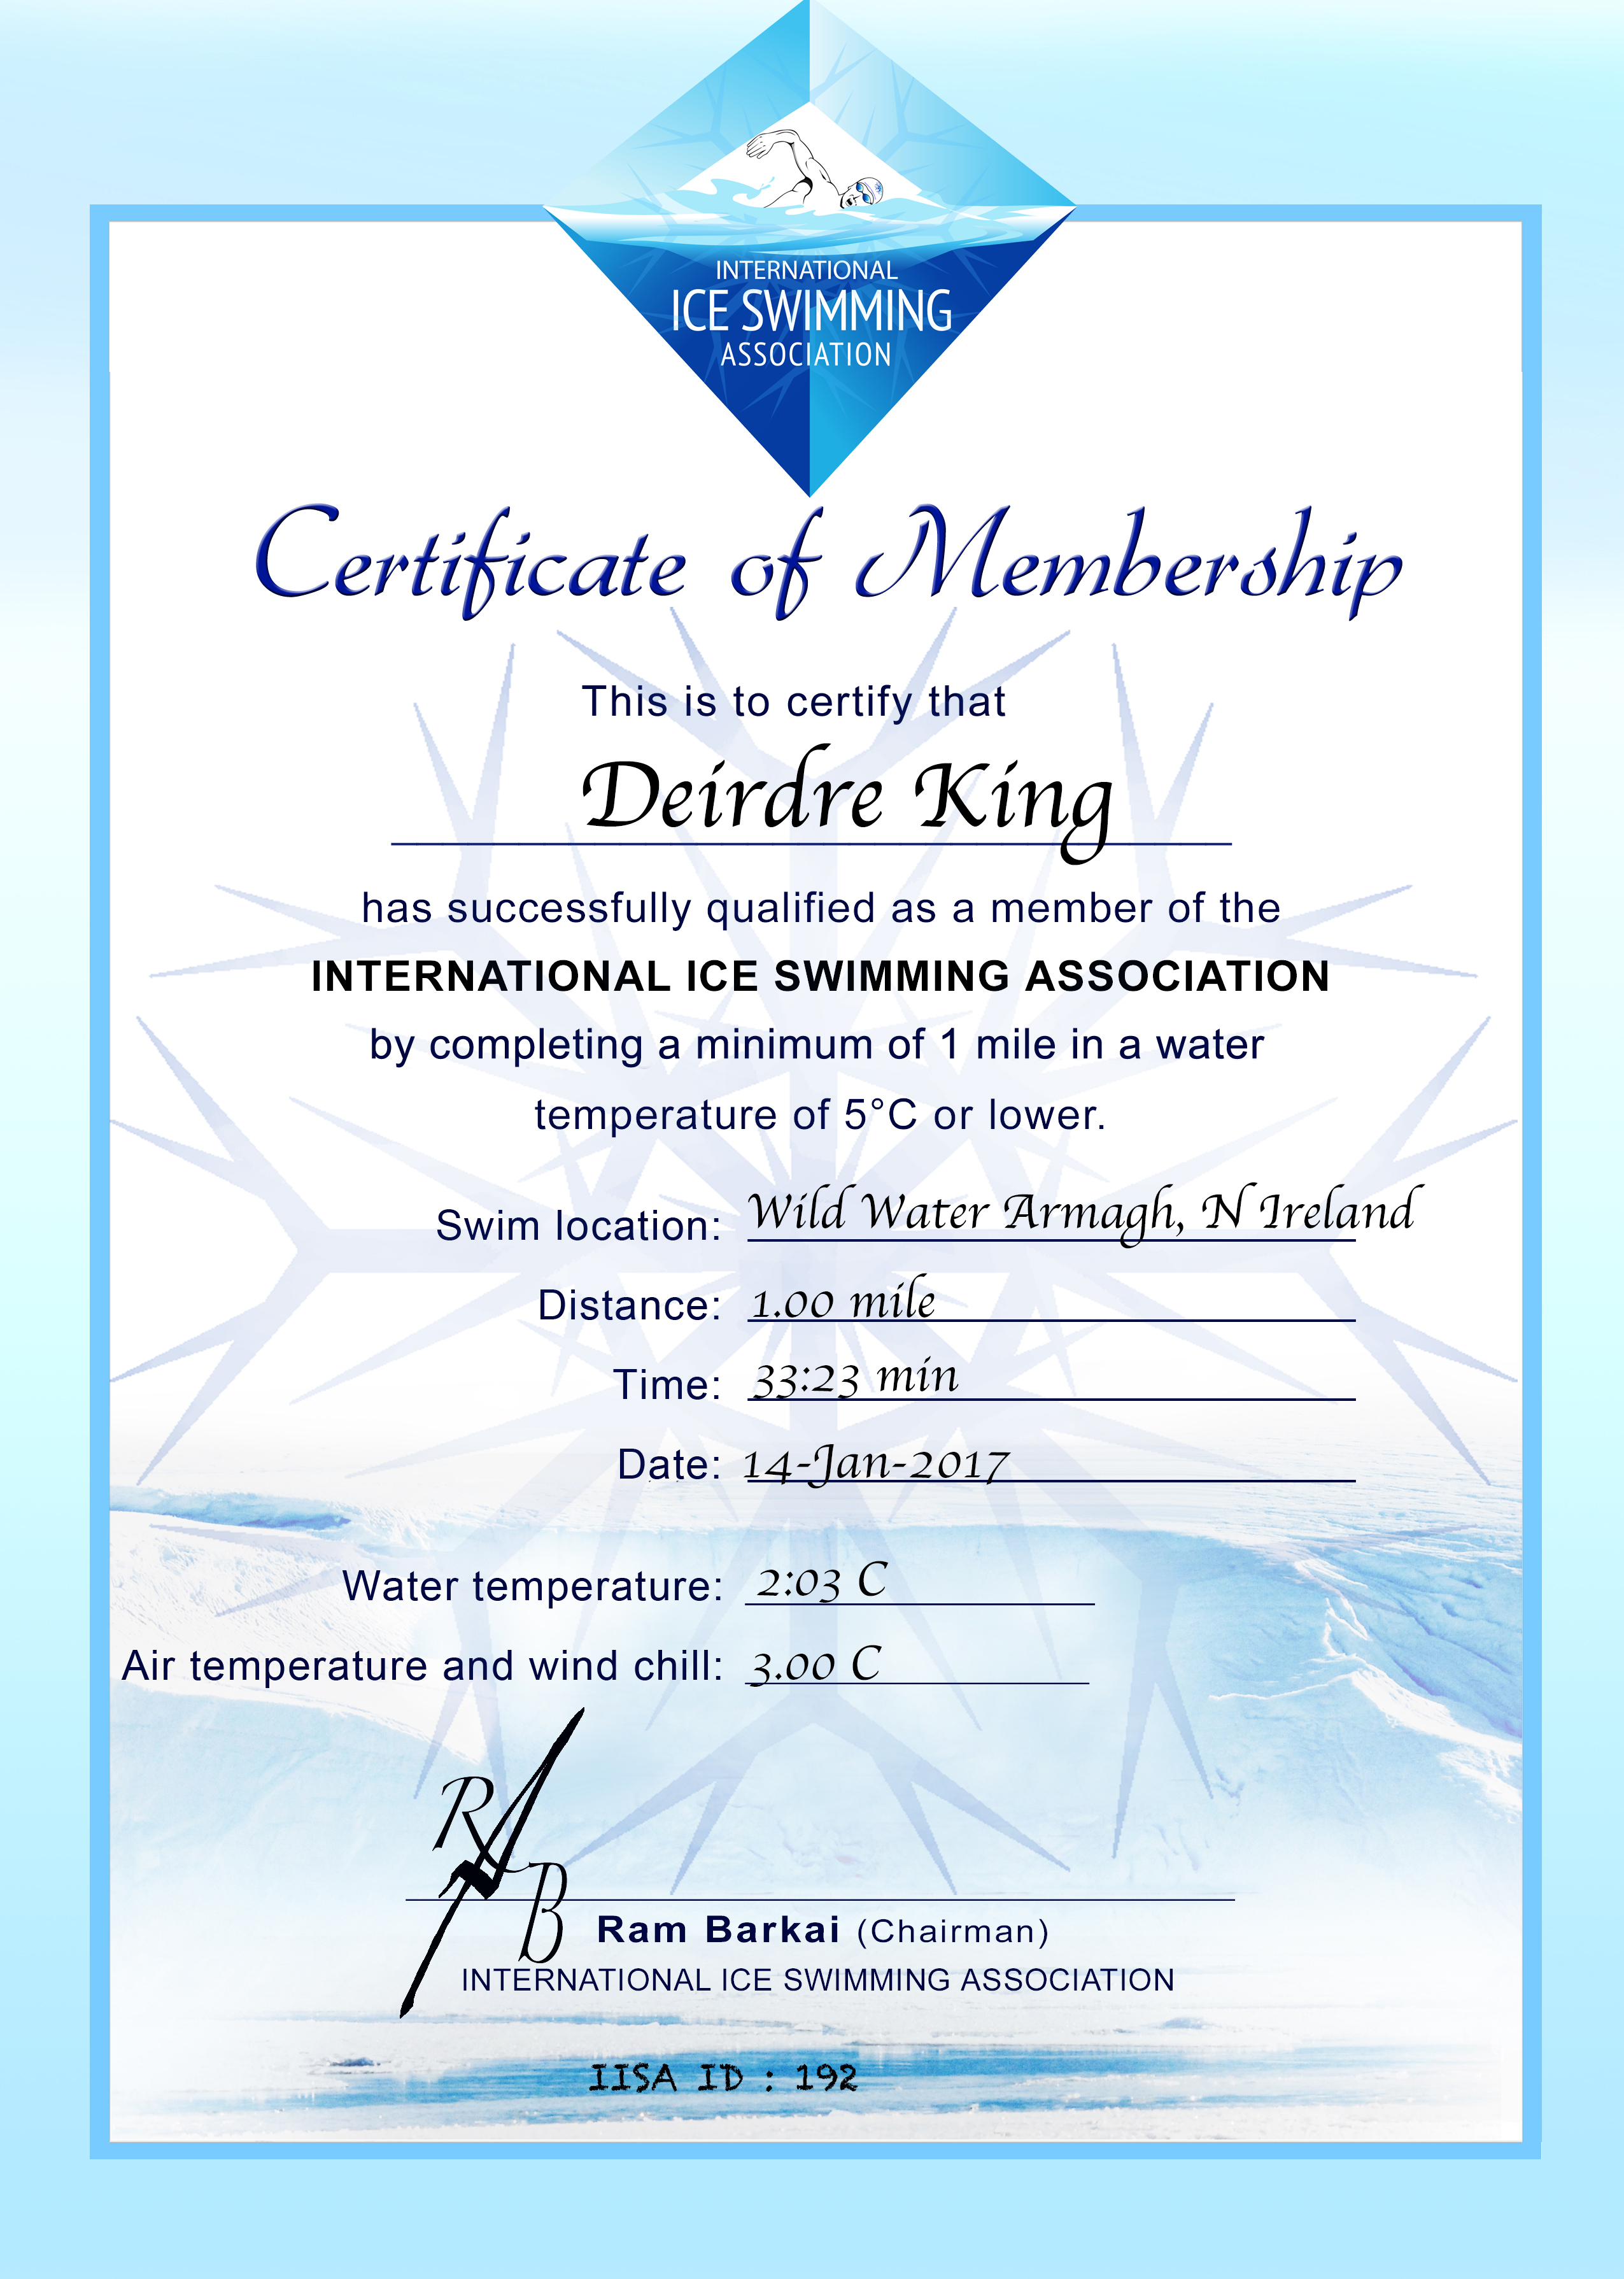 Ice Mile Certificate - Deirdre King